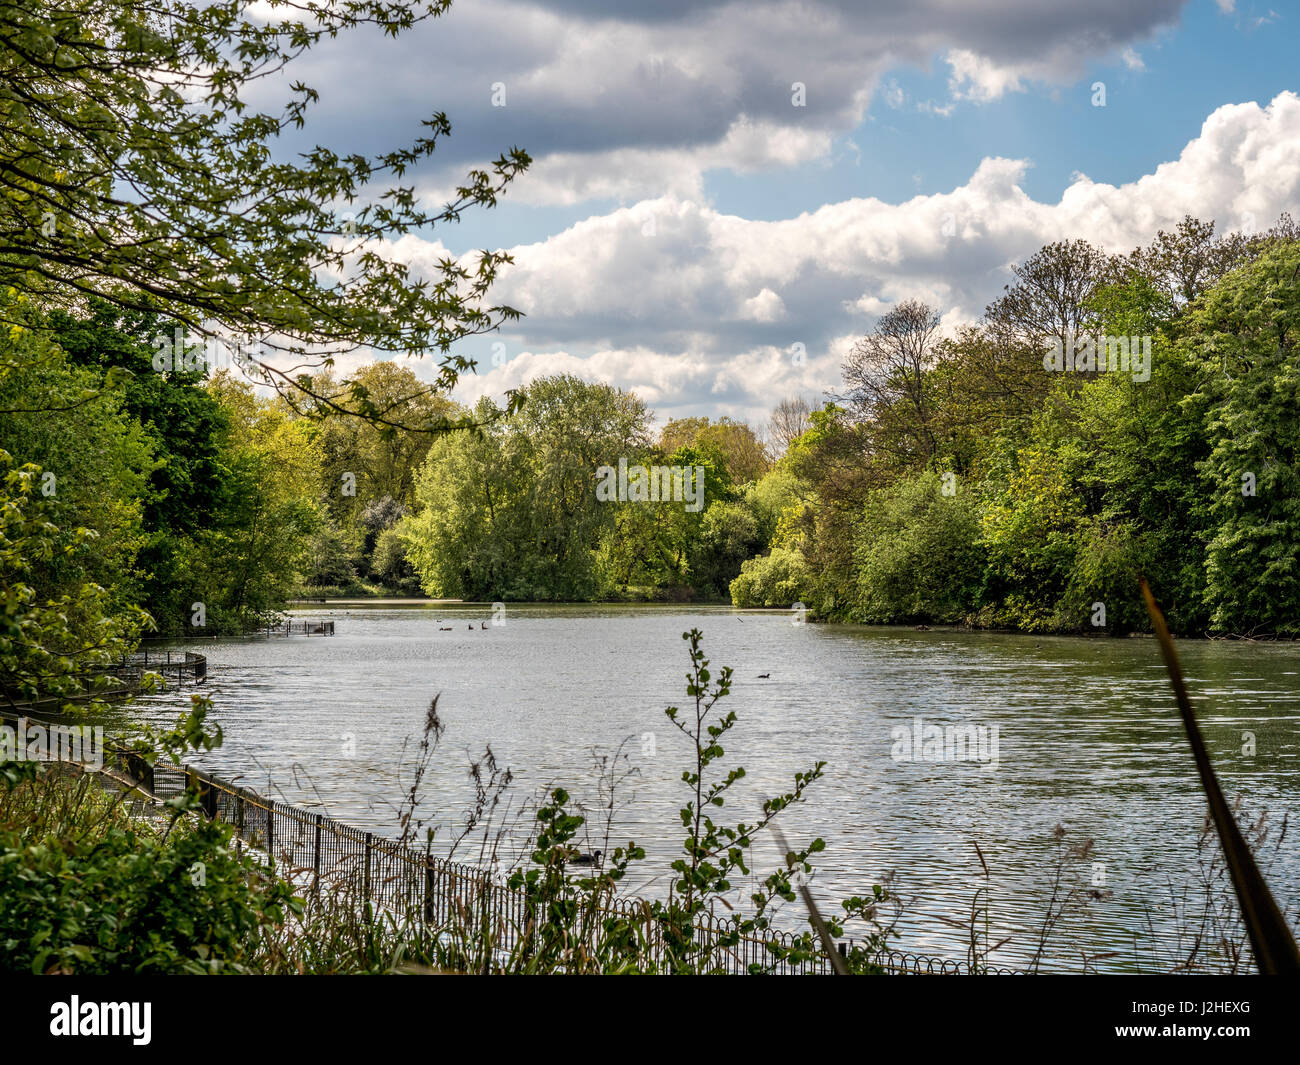 Battersea Park in the Borough of Wandsworth, South bank of the River Thames, London, UK. - Stock Image